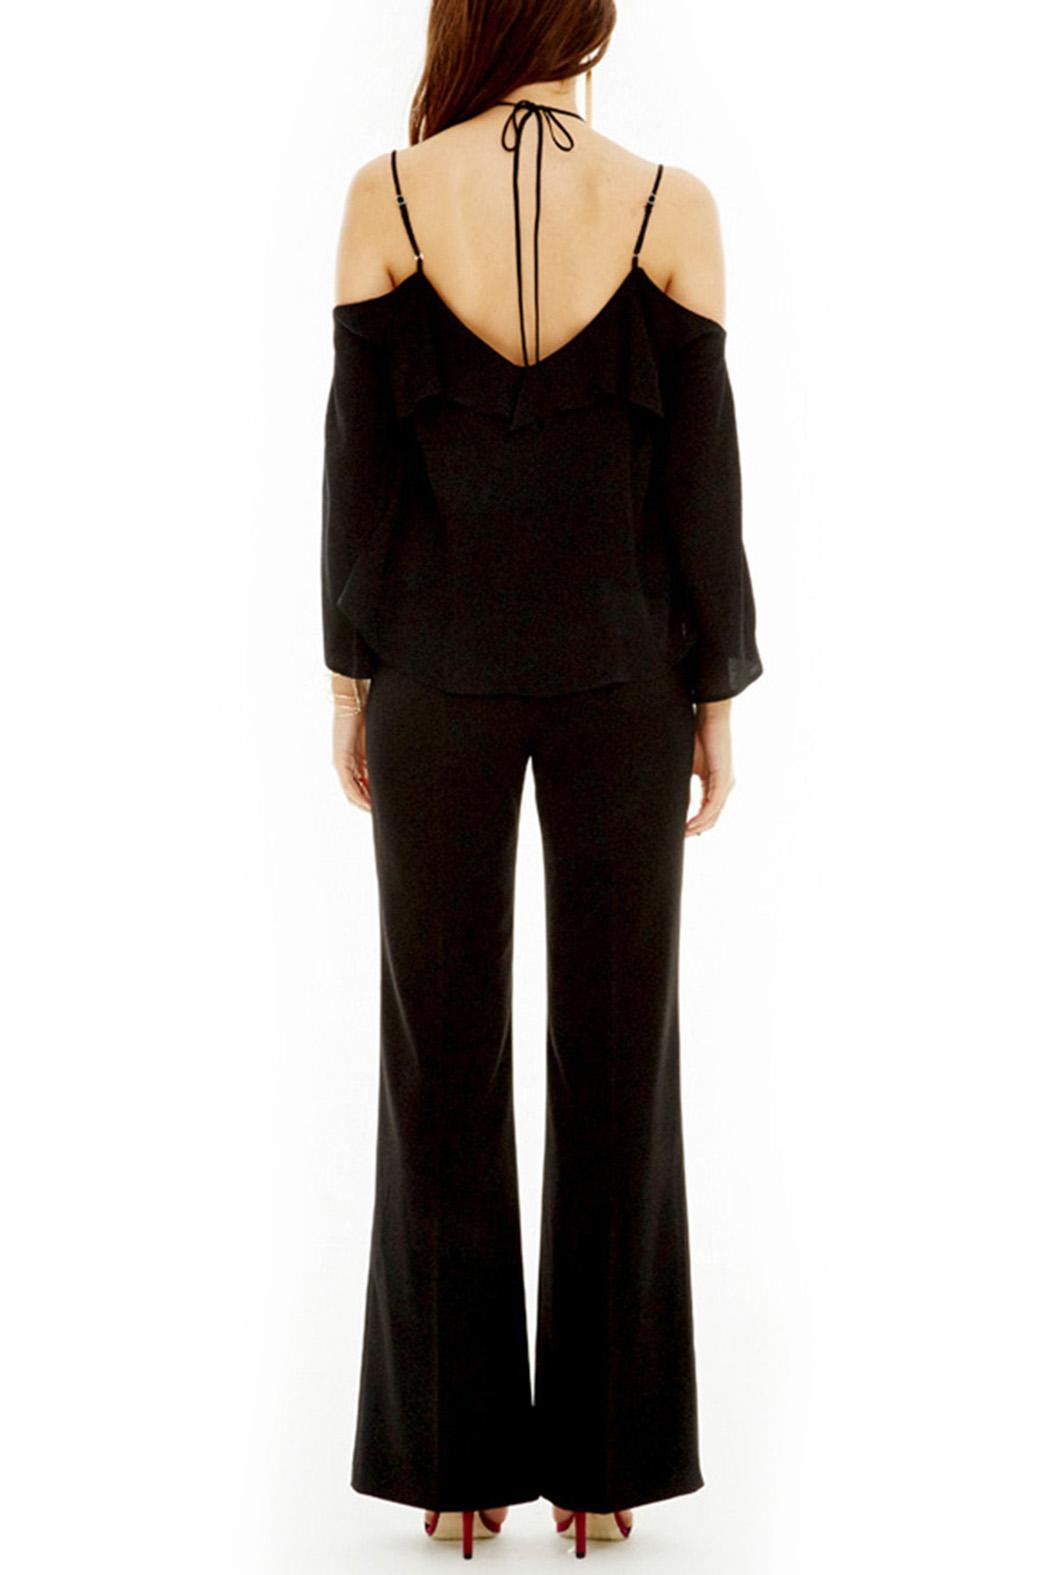 ASTR Black Ruffle Top - Side Cropped Image